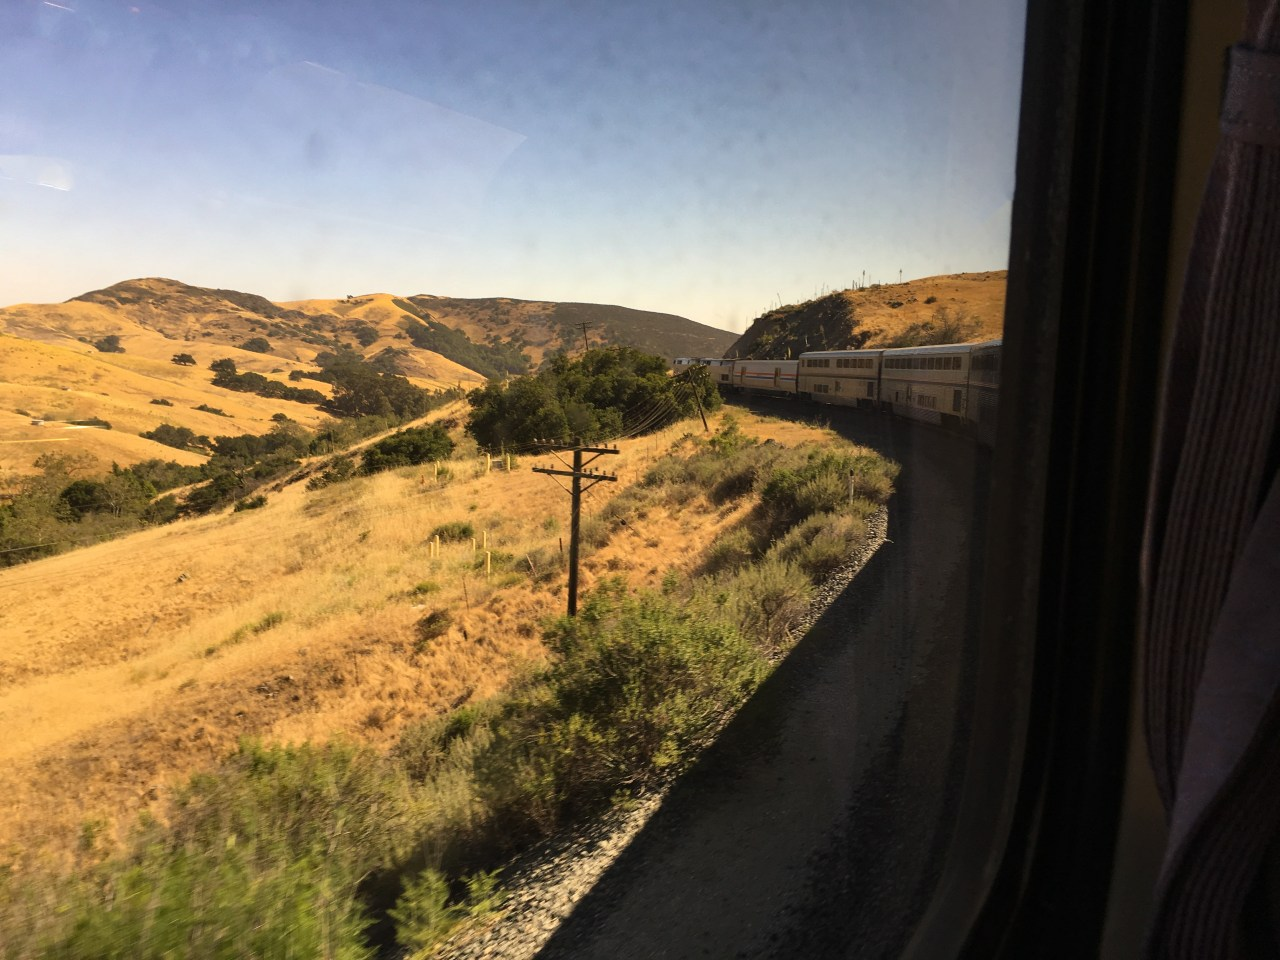 Watching the Coast Starlight navigate a curve